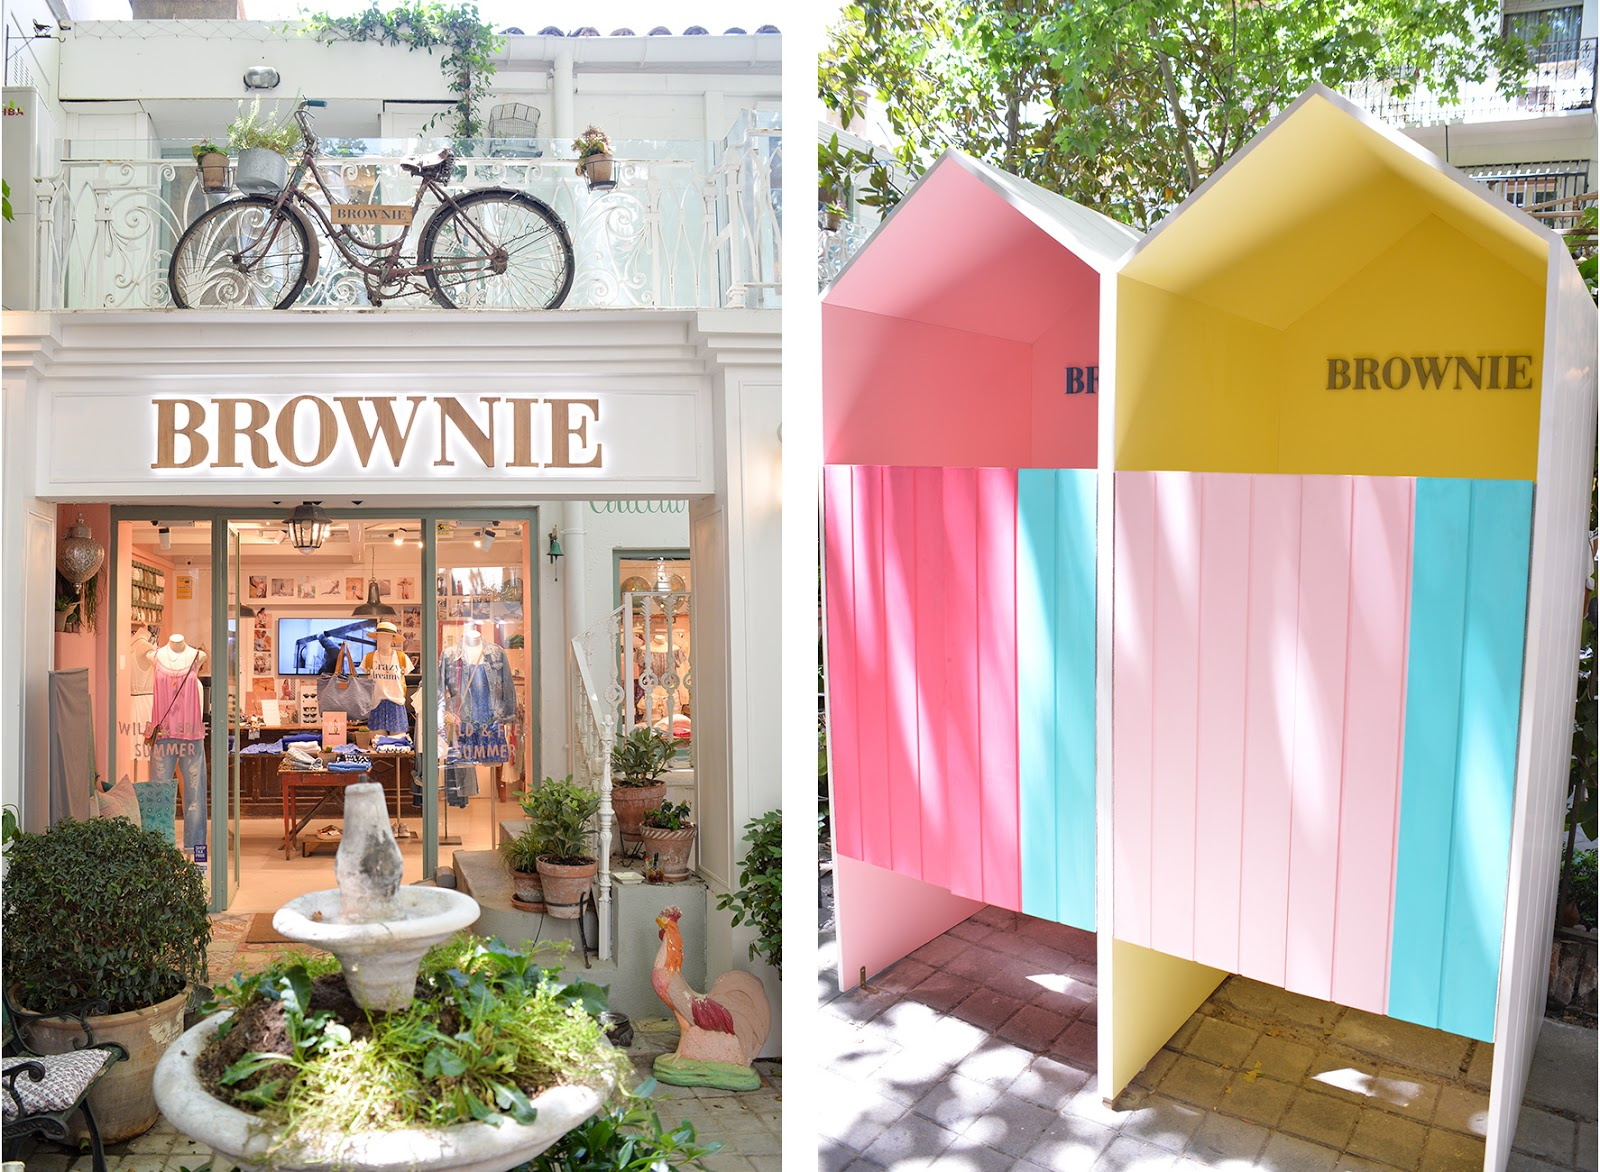 Brownie calle Hermosilla shopping guide Madrid